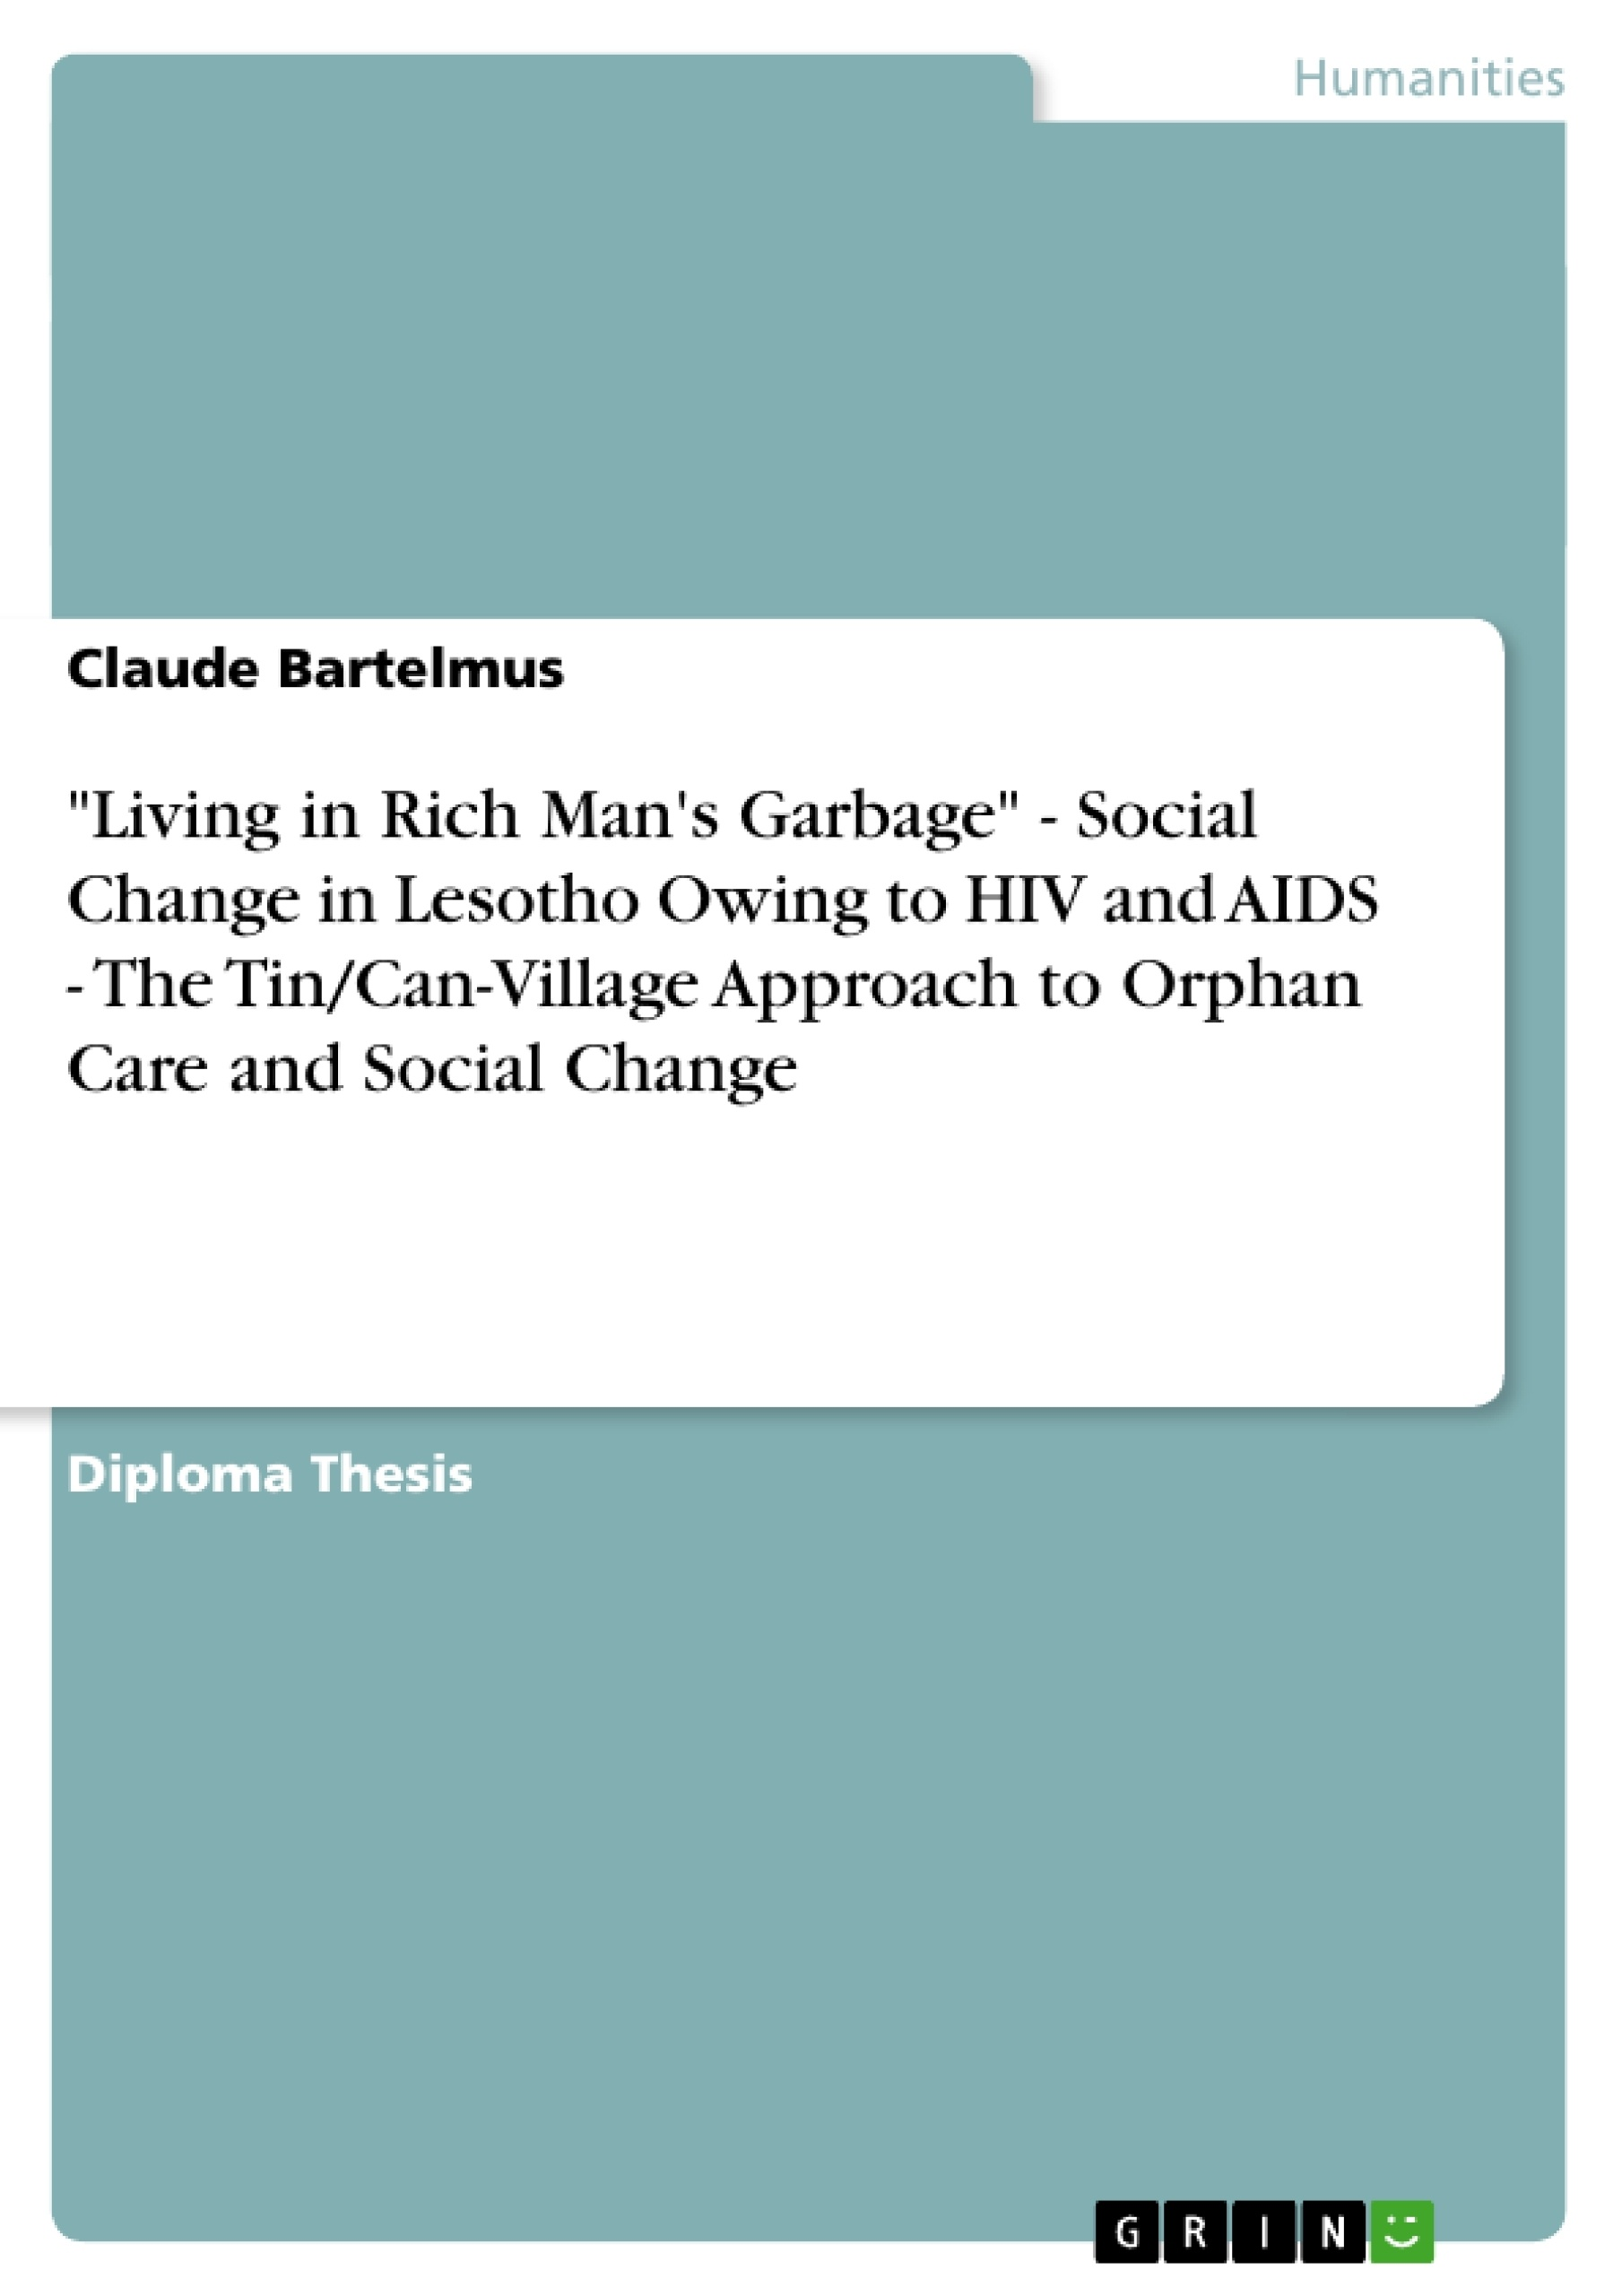 """Title: """"Living in Rich Man's Garbage"""" - Social Change in Lesotho Owing to HIV and AIDS - The Tin/Can-Village Approach to Orphan Care and Social Change"""